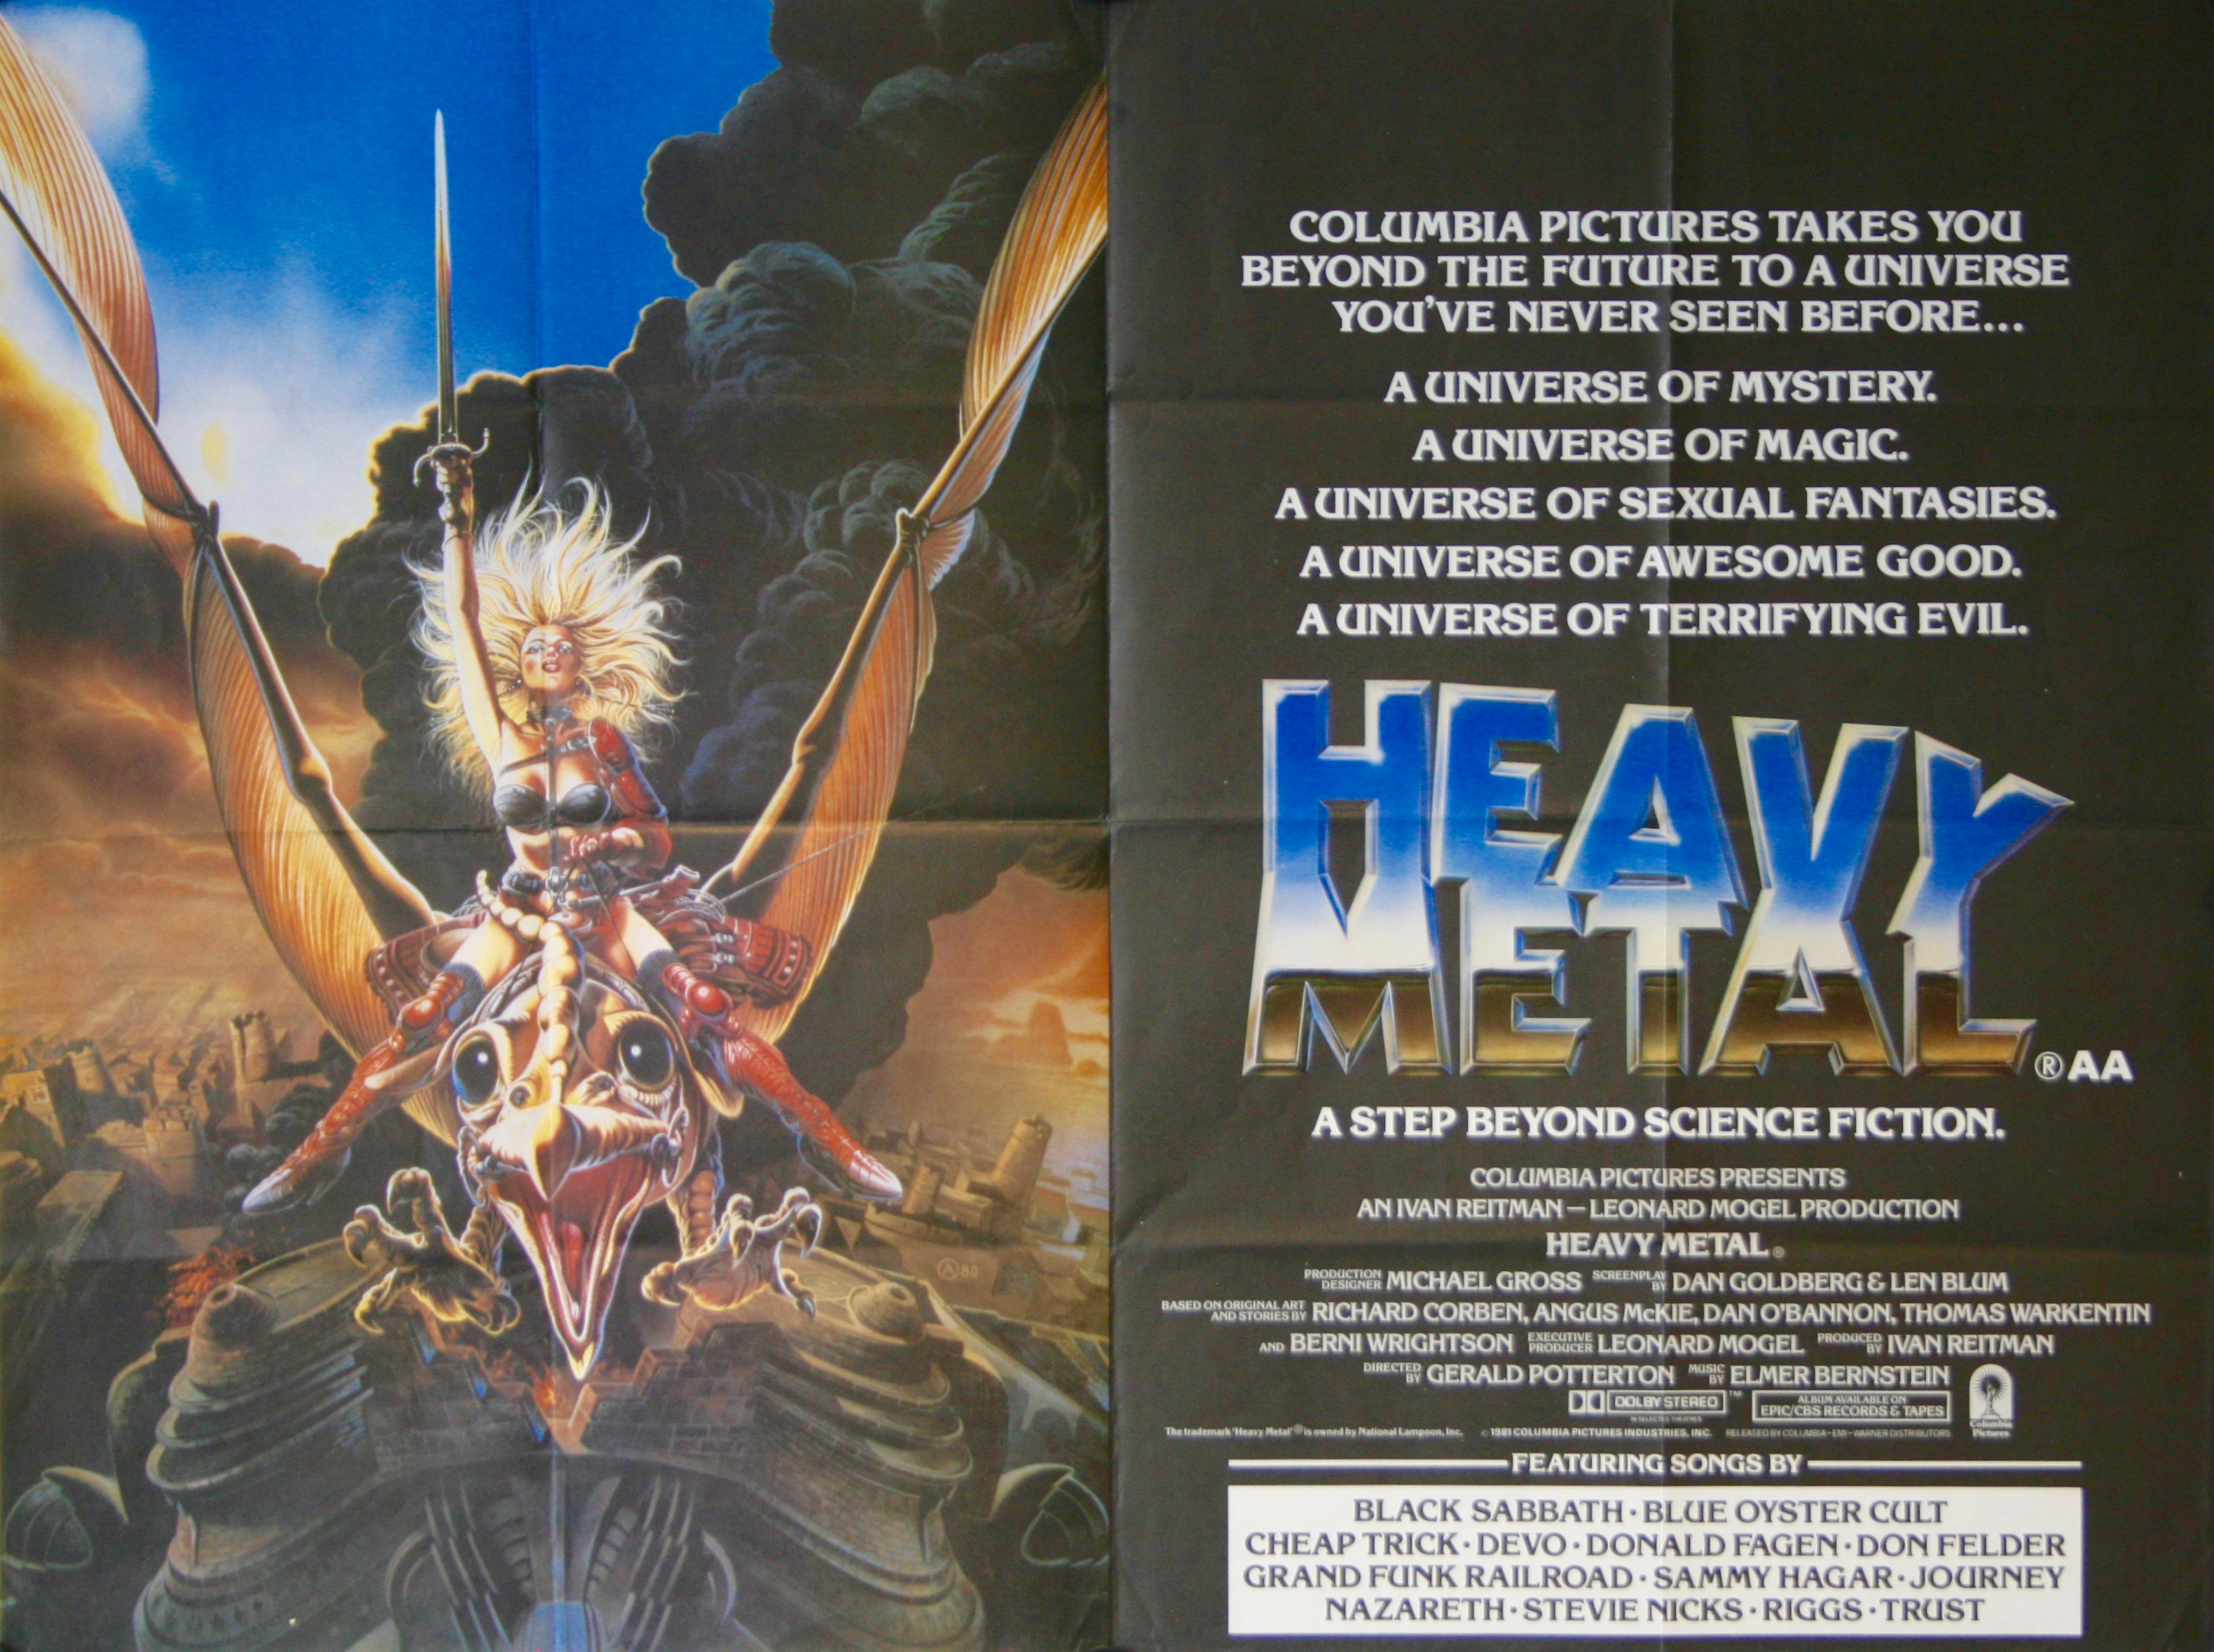 Heavy Metal Movie Poster - Vintage Movie Posters